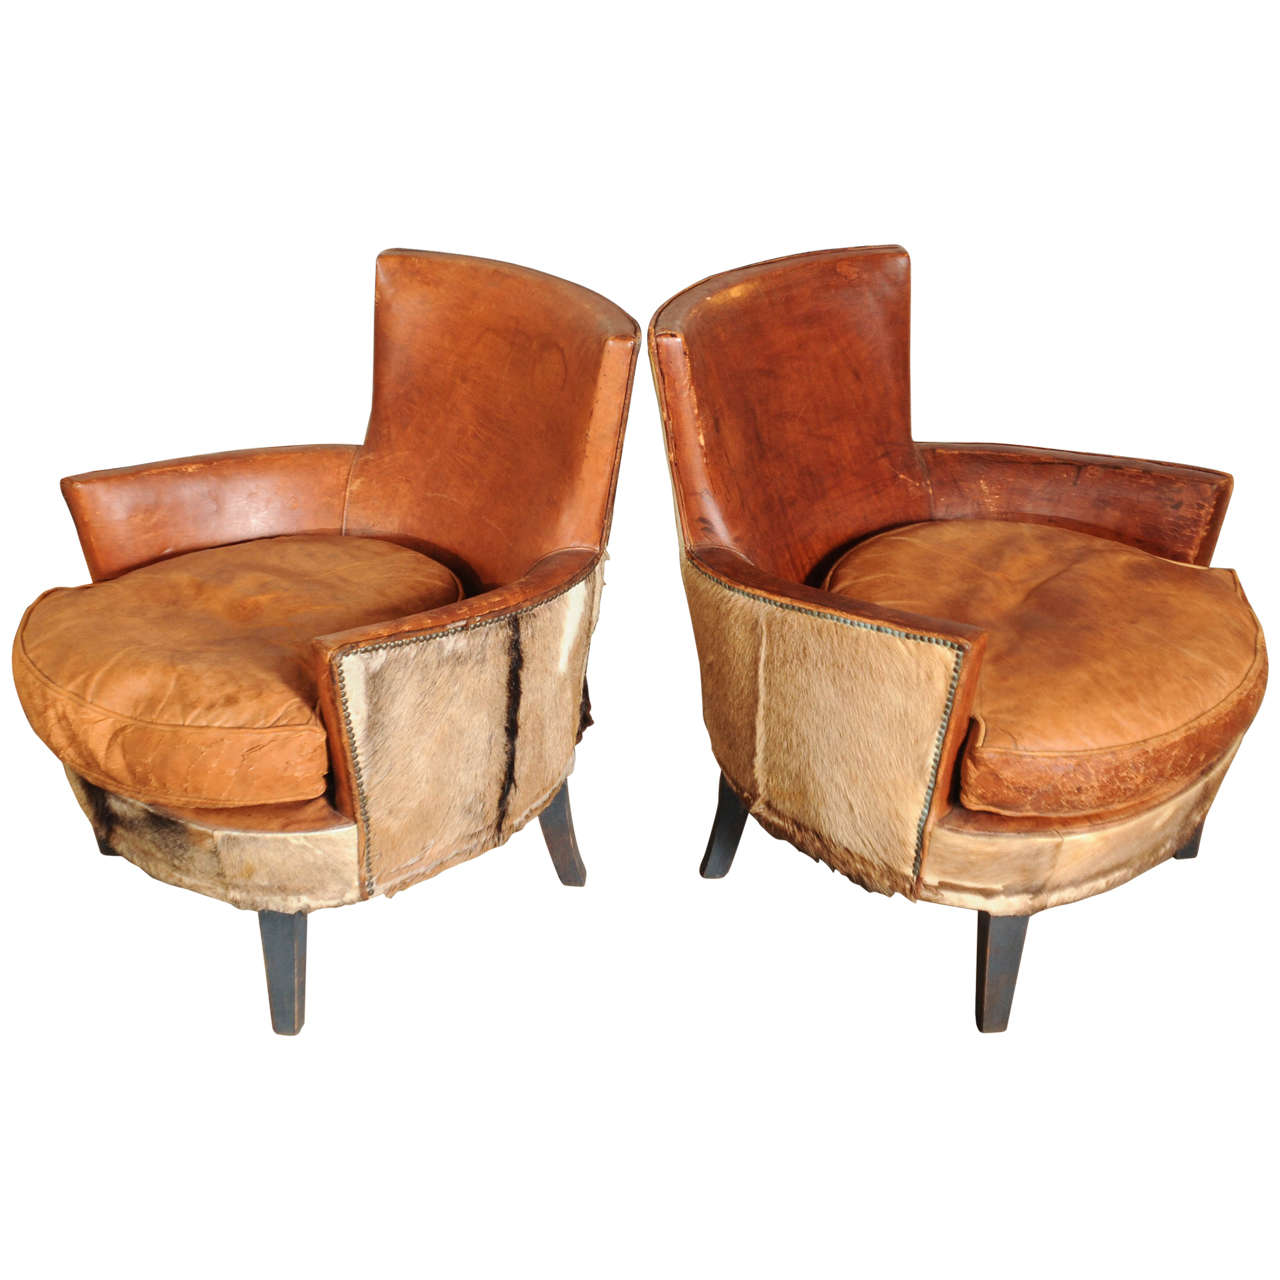 Pair Of 1910s 1920s Boar Skin Armchairs At 1stdibs